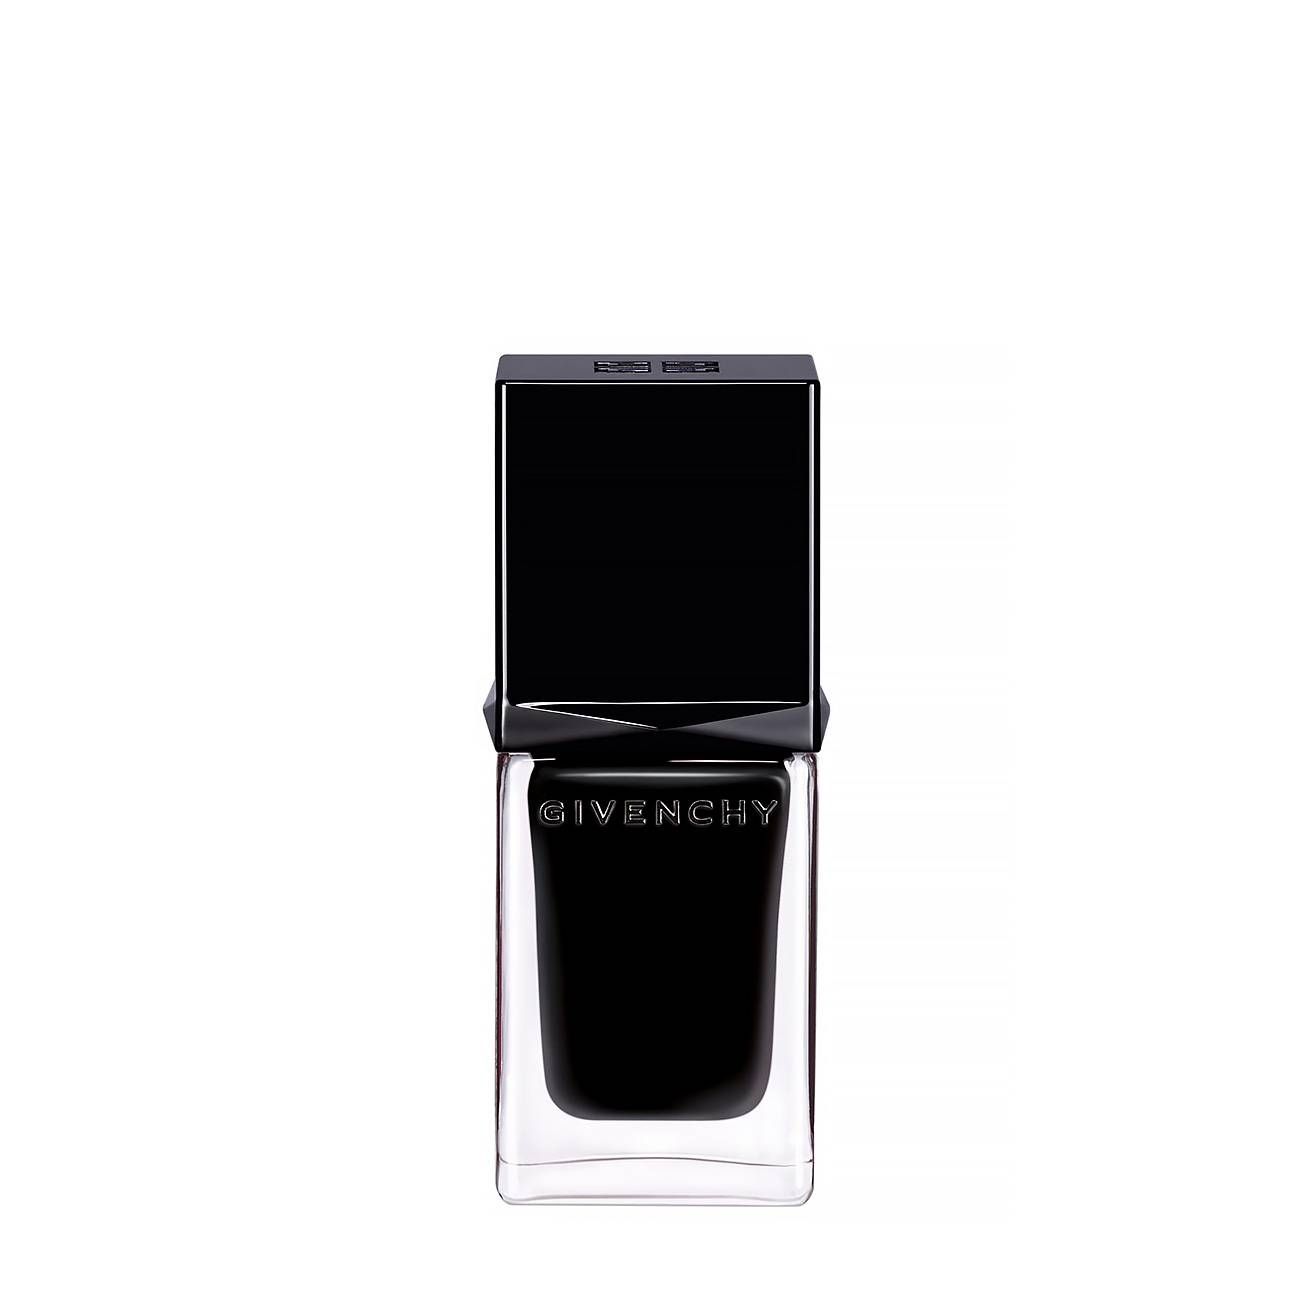 Le Vernis 09 04 Givenchy imagine 2021 bestvalue.eu